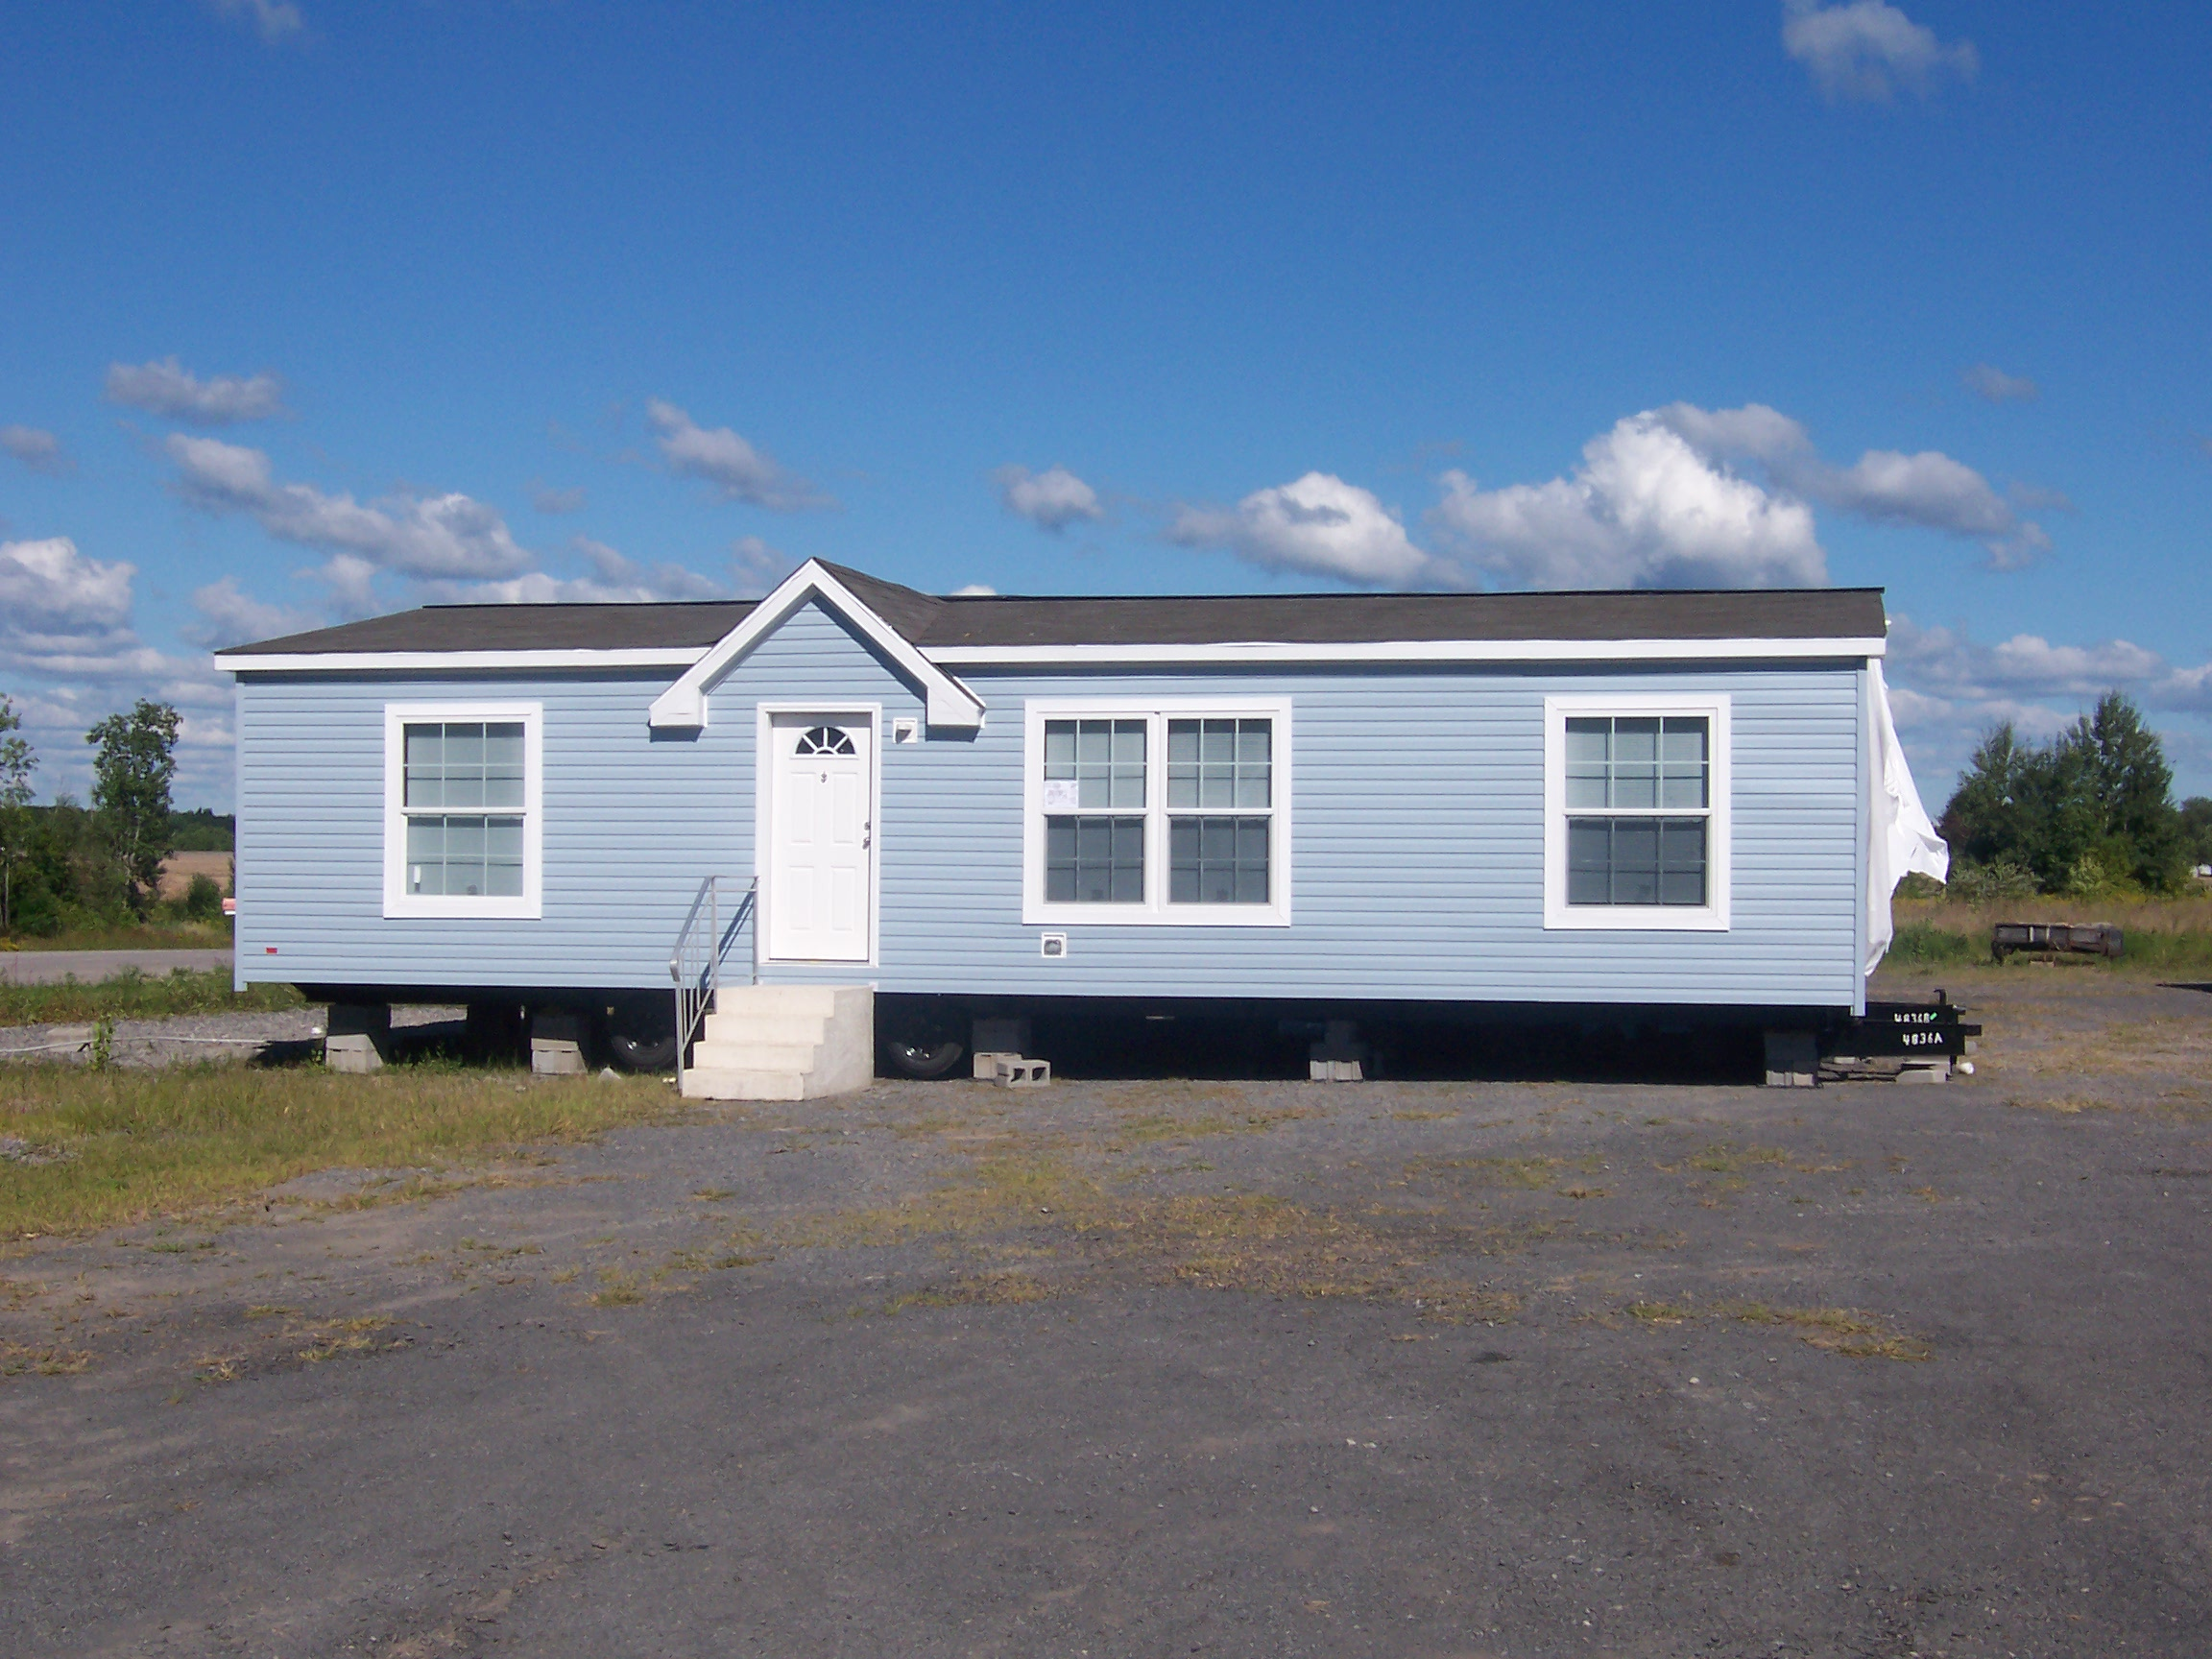 Greentree financial repossessed mobile homes - Featured Homes